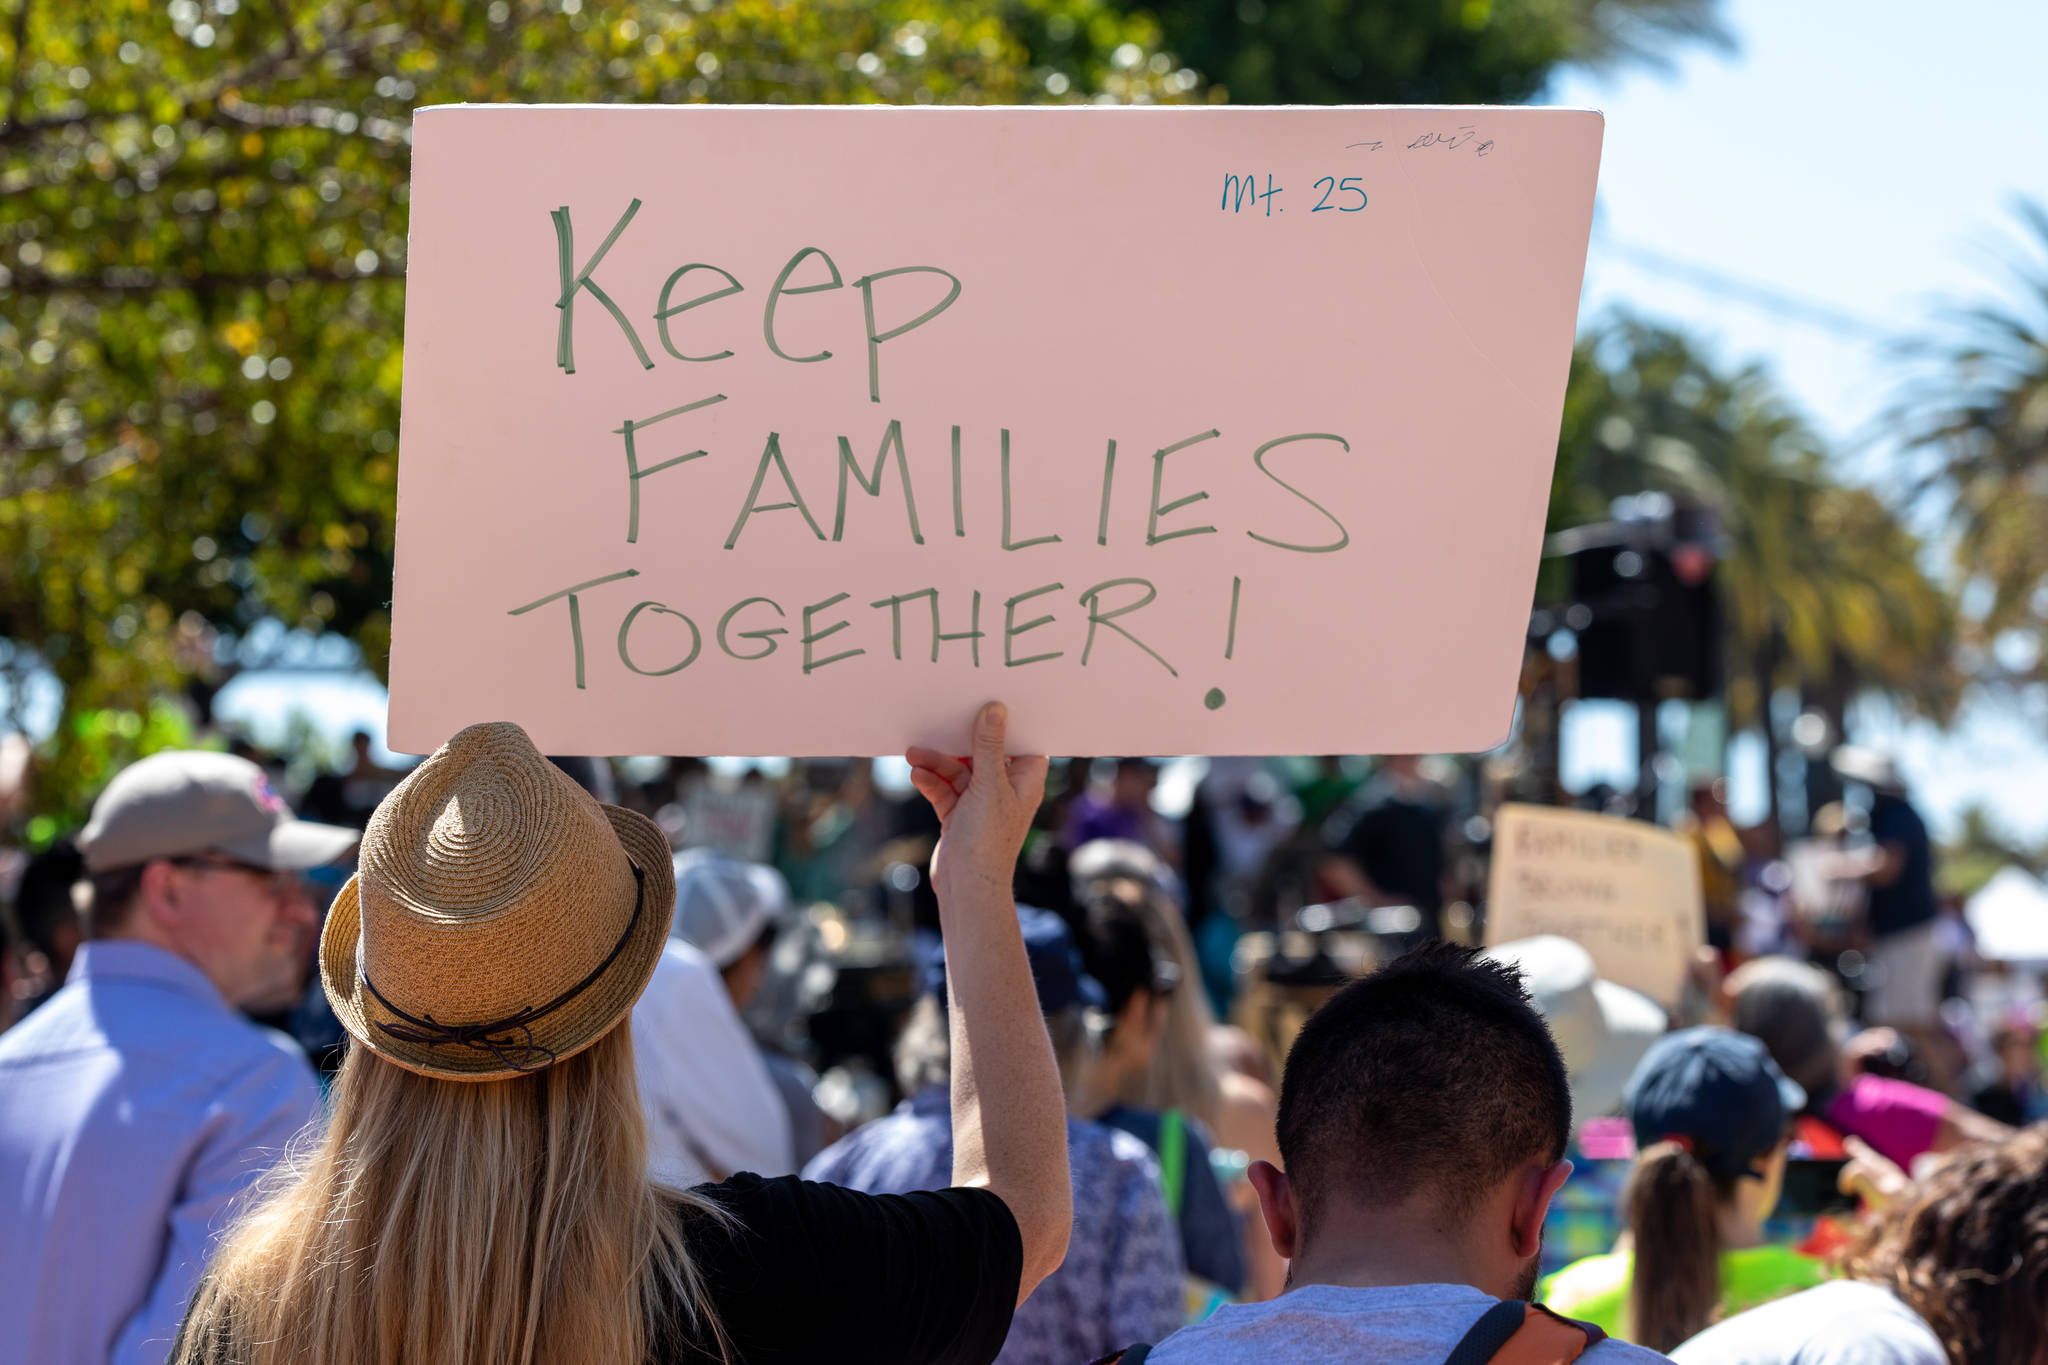 The public charge rule will most affect individuals seeking to join their loved ones as lawful permanent residents in the United States. (Karl Sonnenberg/Courtesy photo)